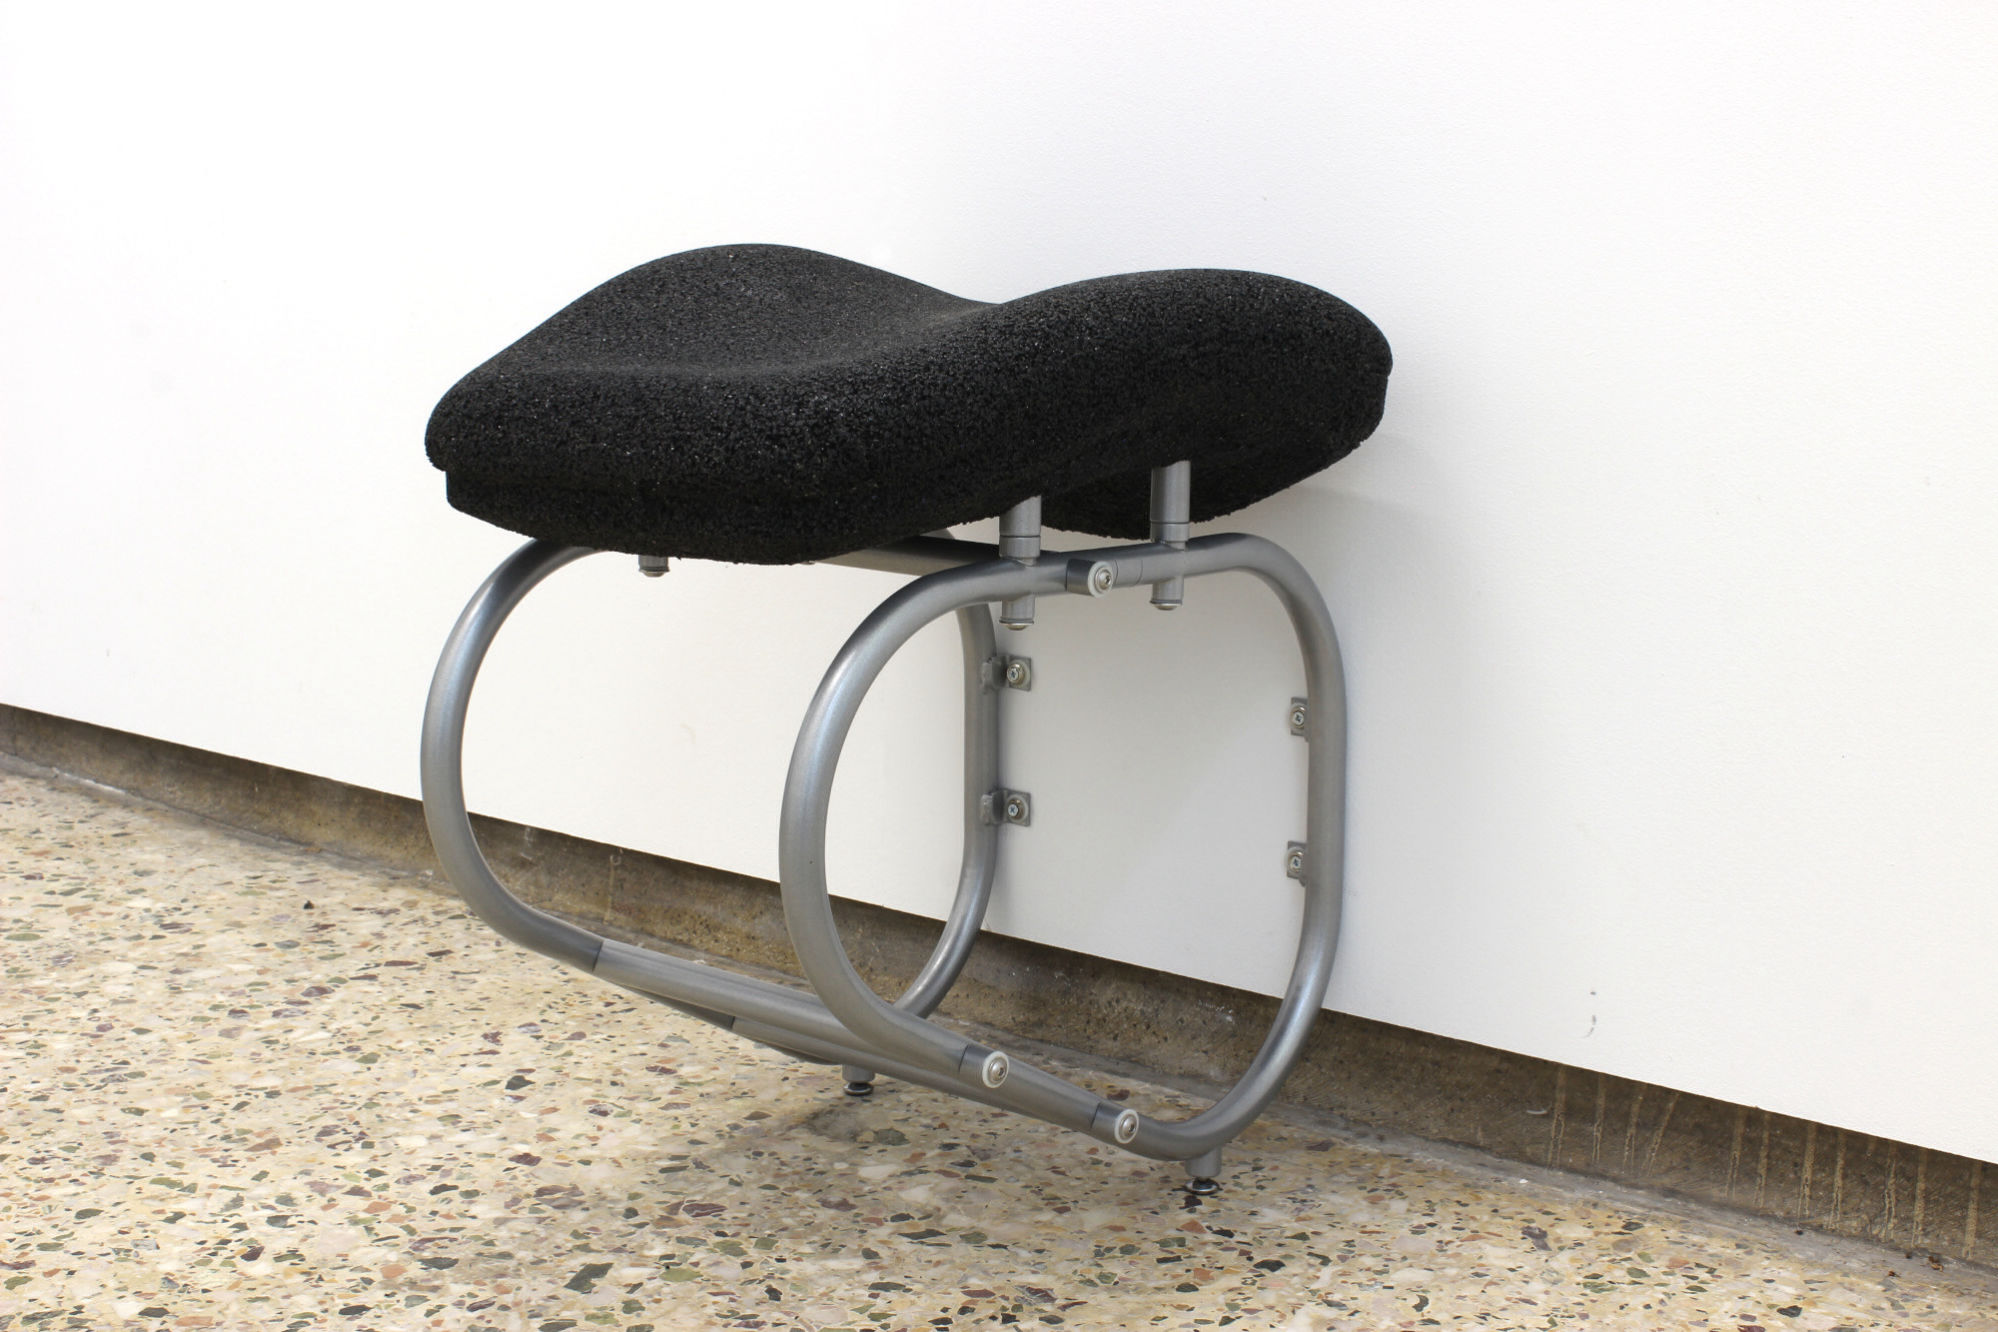 James Fuller - Wall Seat, 2020 - Tyre Chippings, Powder Coated Steel, Reinforced Plaster Polymer - 03